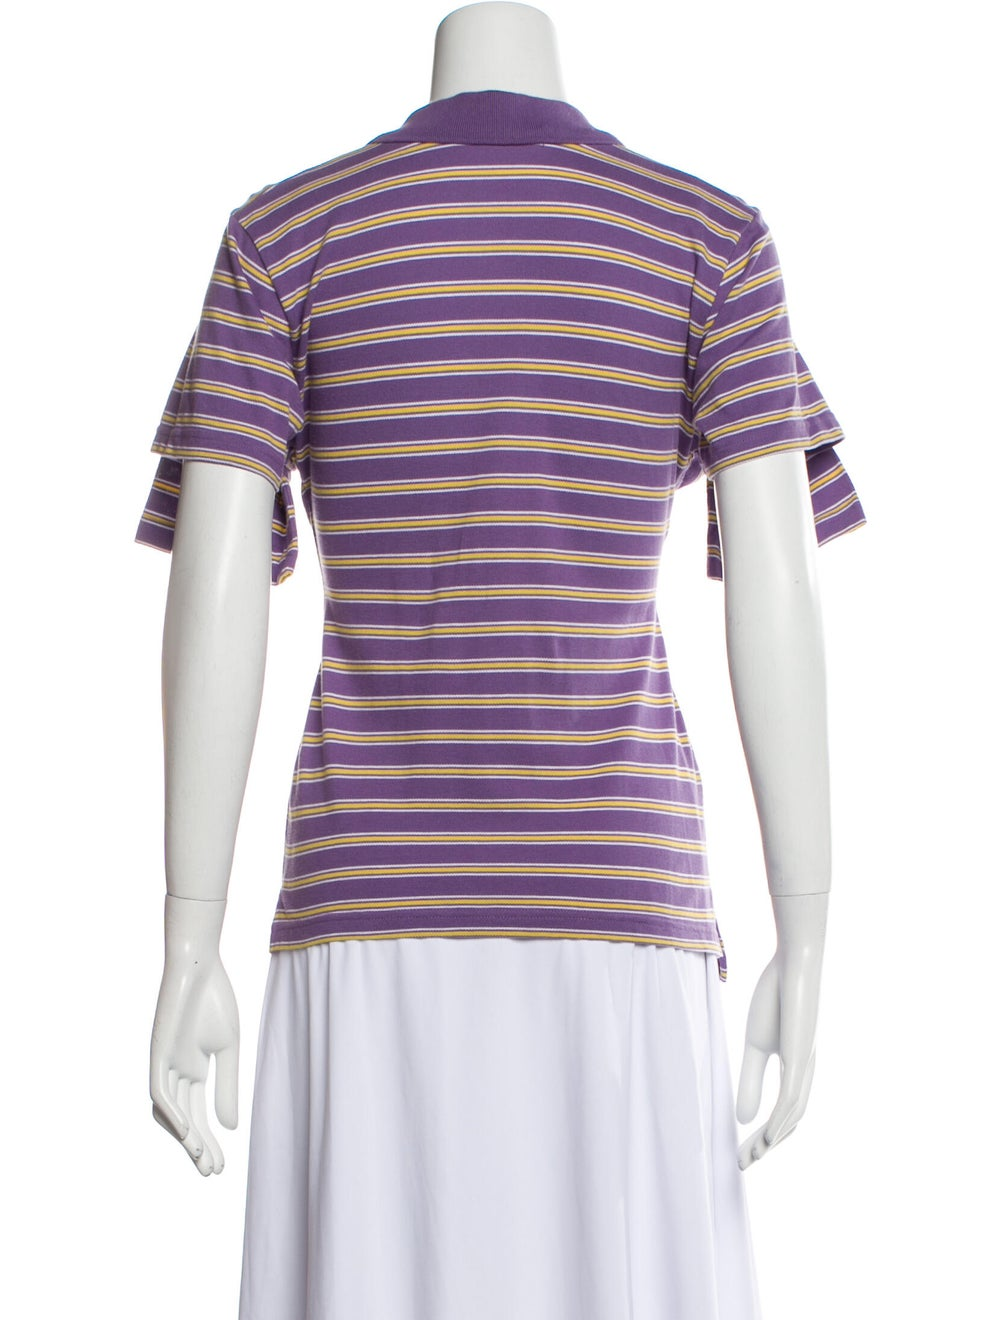 Y/Project Striped Short Sleeve Polo Purple - image 3